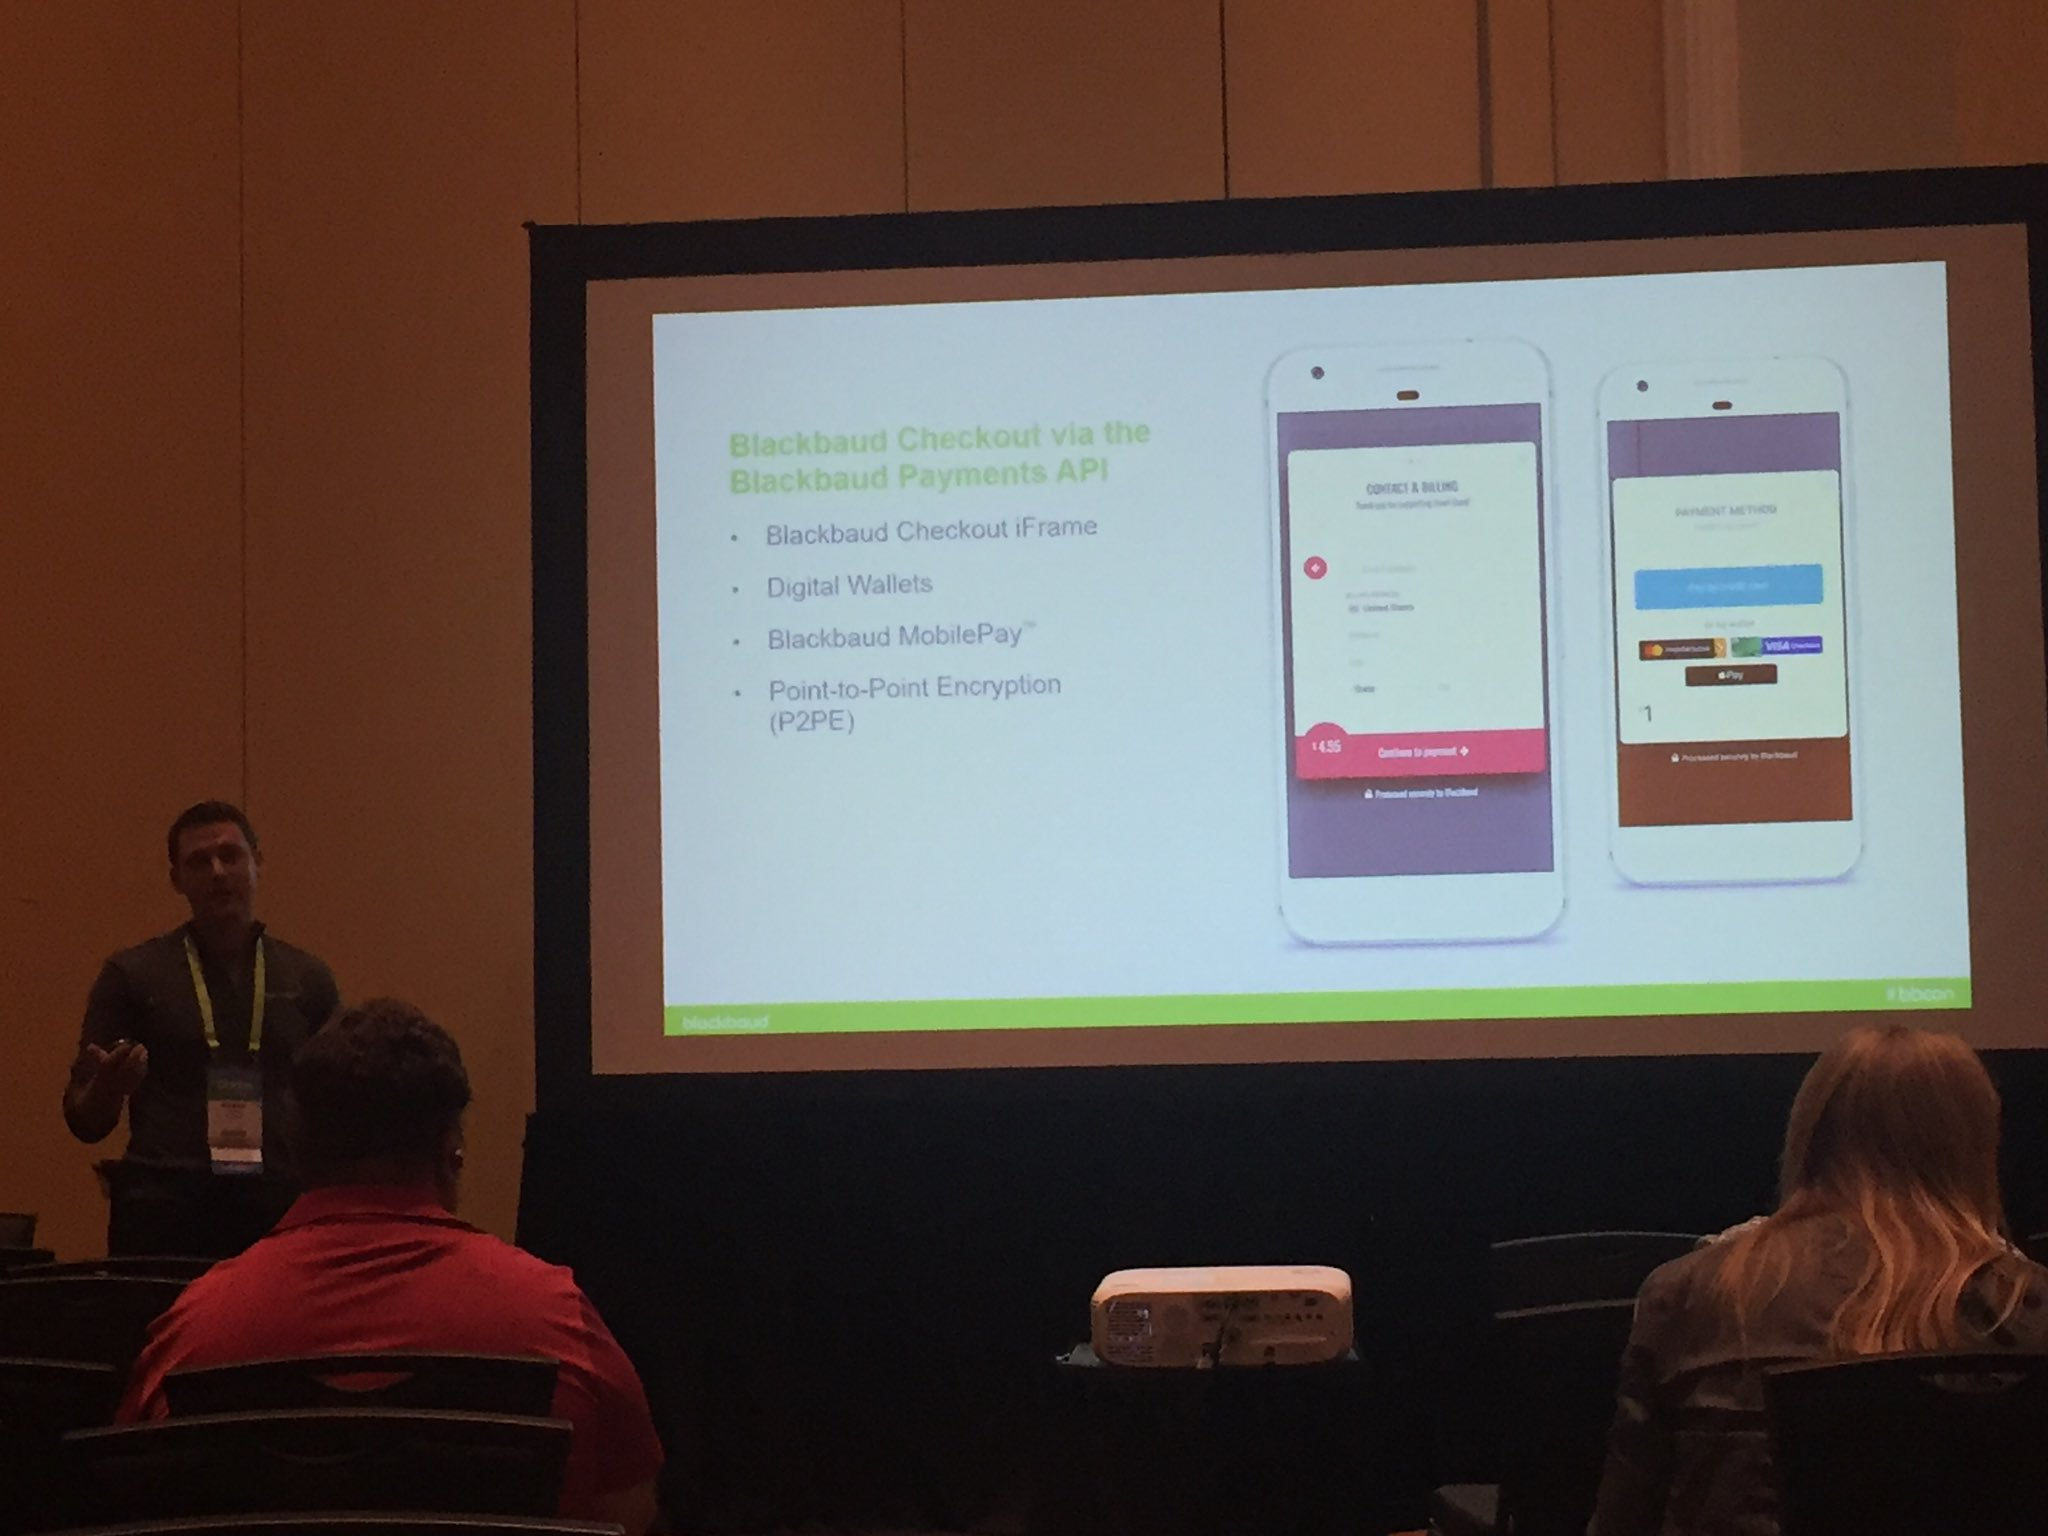 Dan Keyworth on Twitter As announced at bbcon our new 2048x1536